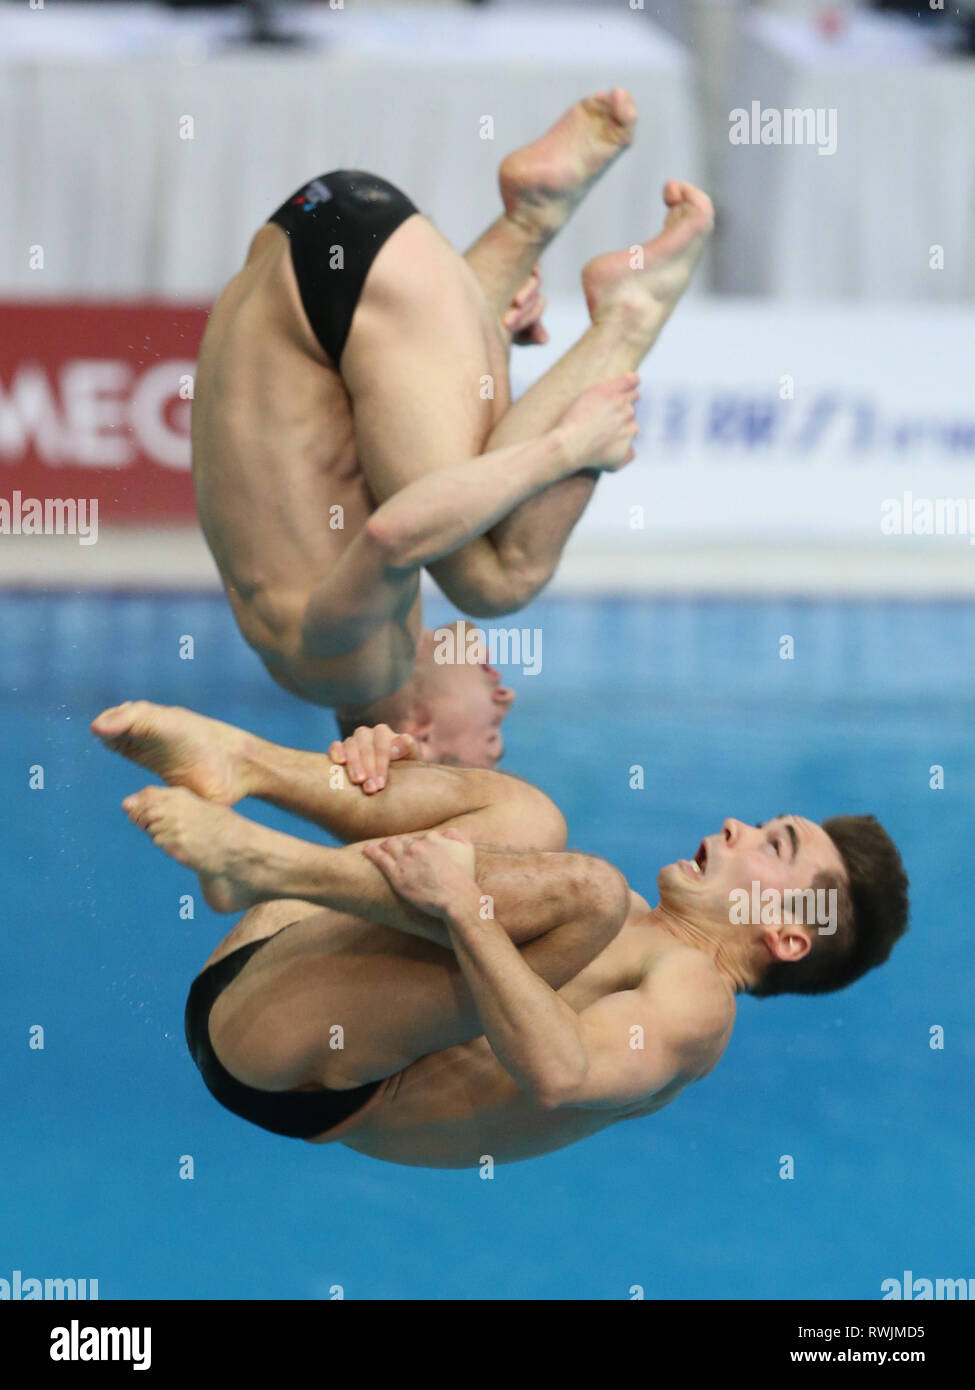 Beijing, China. 7th Mar, 2019. Jack Laugher (top)/Daniel Goodfellow of Britain compete during the men's 3m synchronised springboard final of the FINA Diving World Series 2019 at the National Aquatics Center in Beijing, capital of China, March 7, 2019. Credit: Xu Zijian/Xinhua/Alamy Live News - Stock Image